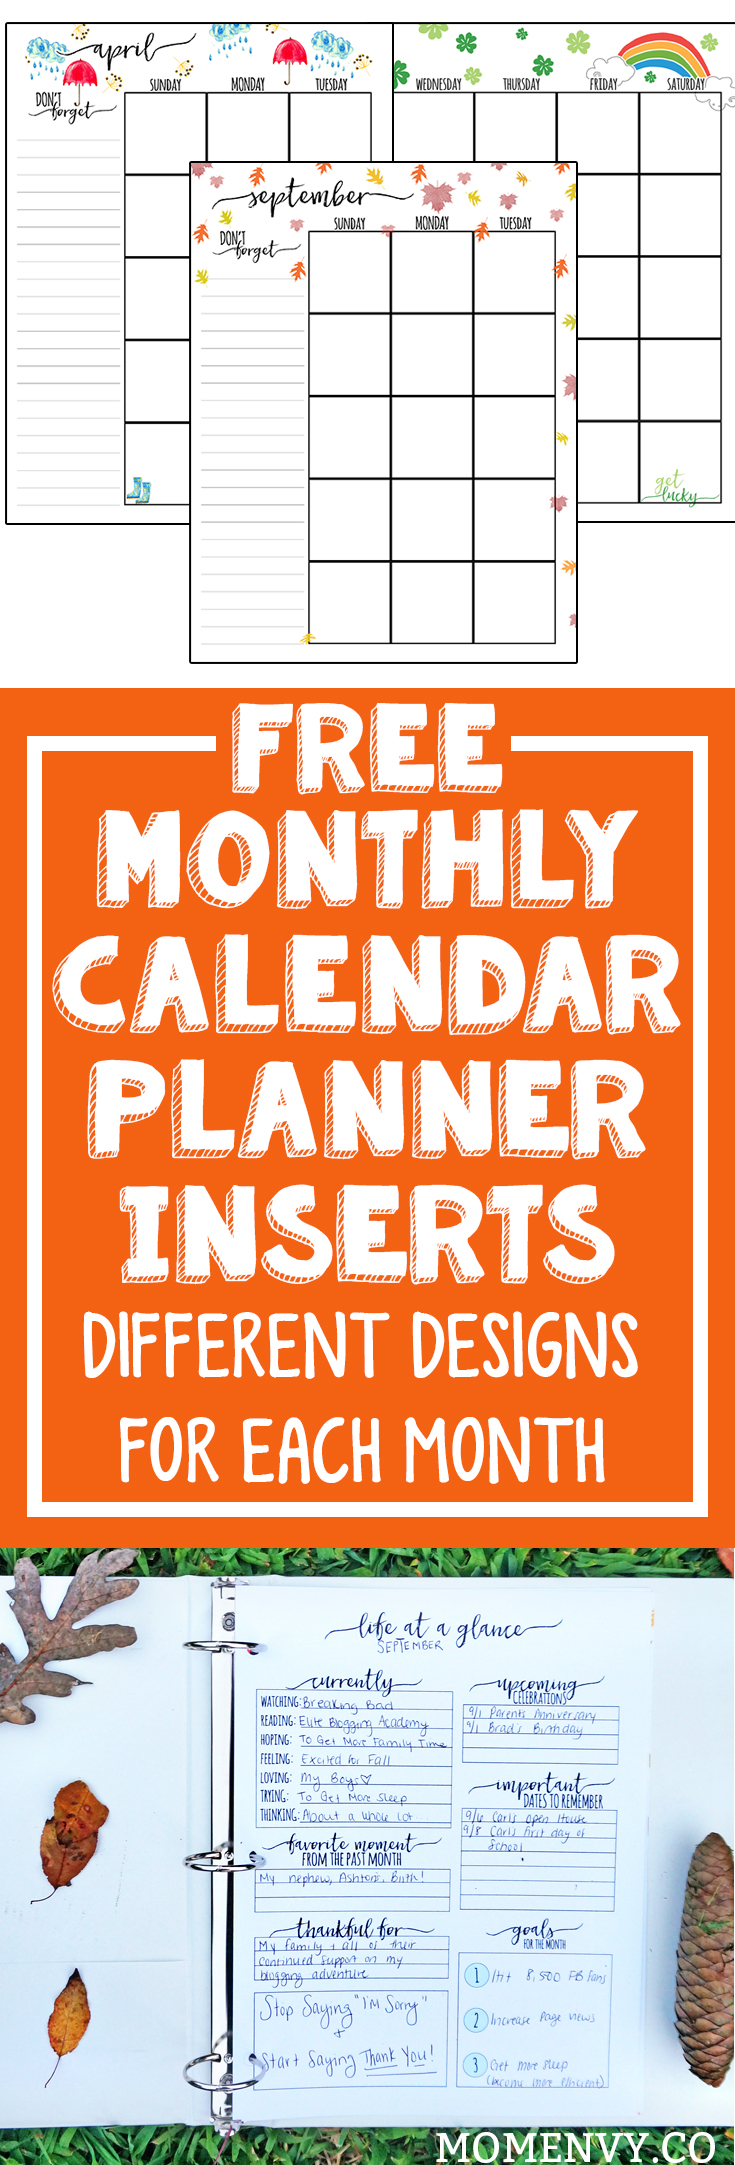 free monthly calendar planner koni polycode co